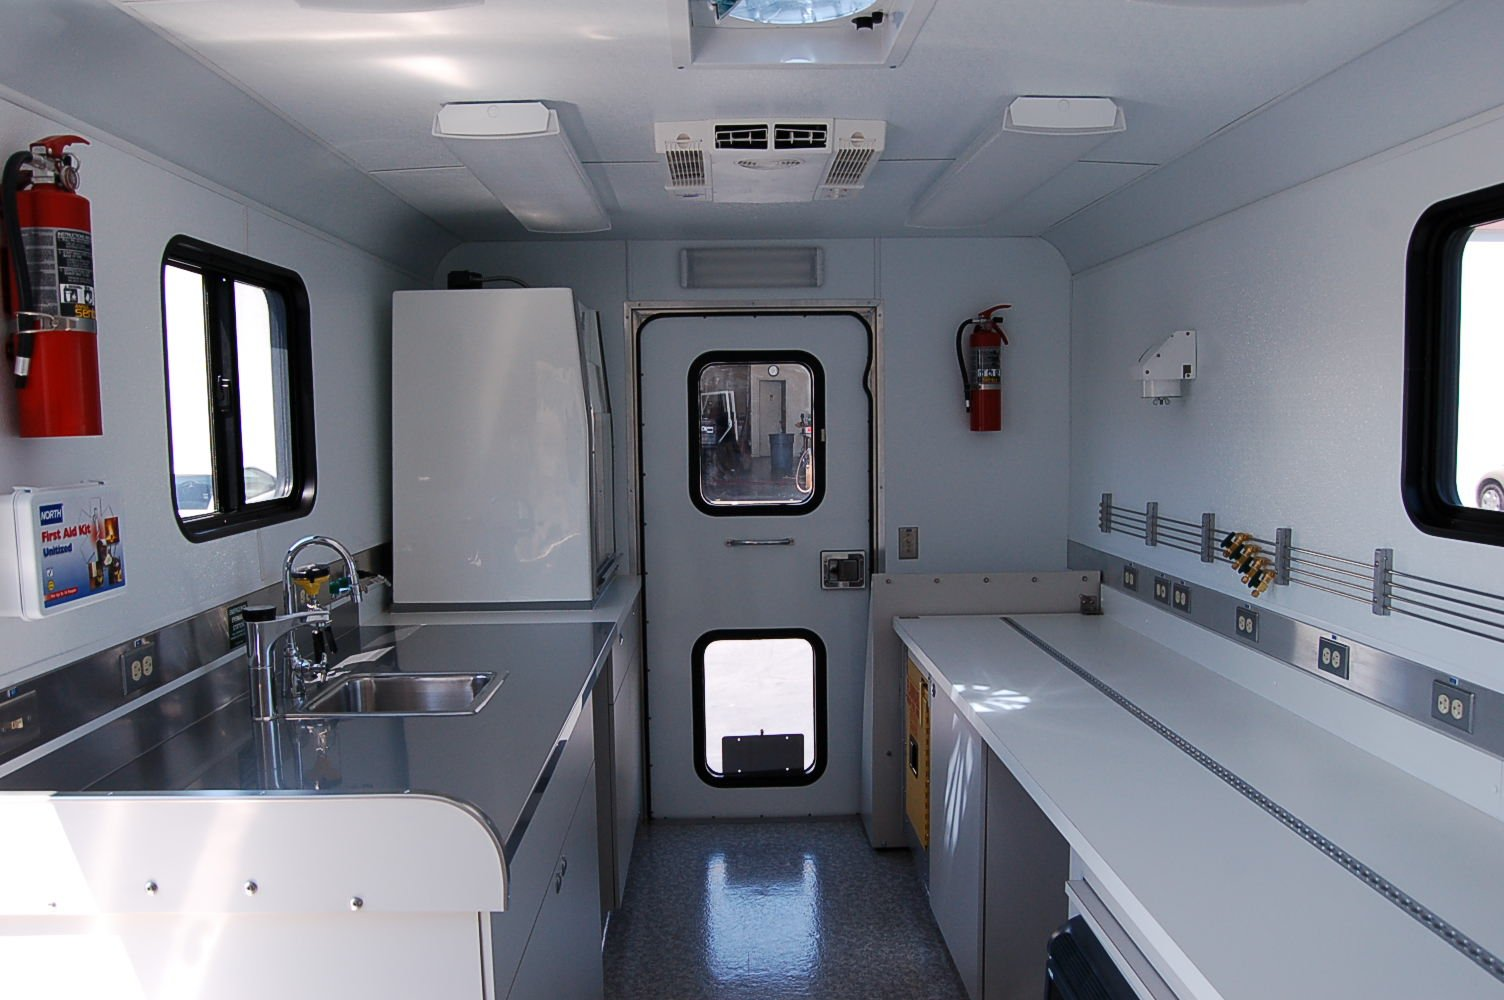 Mobile Laboratory 215-01 Interior Rear to Front